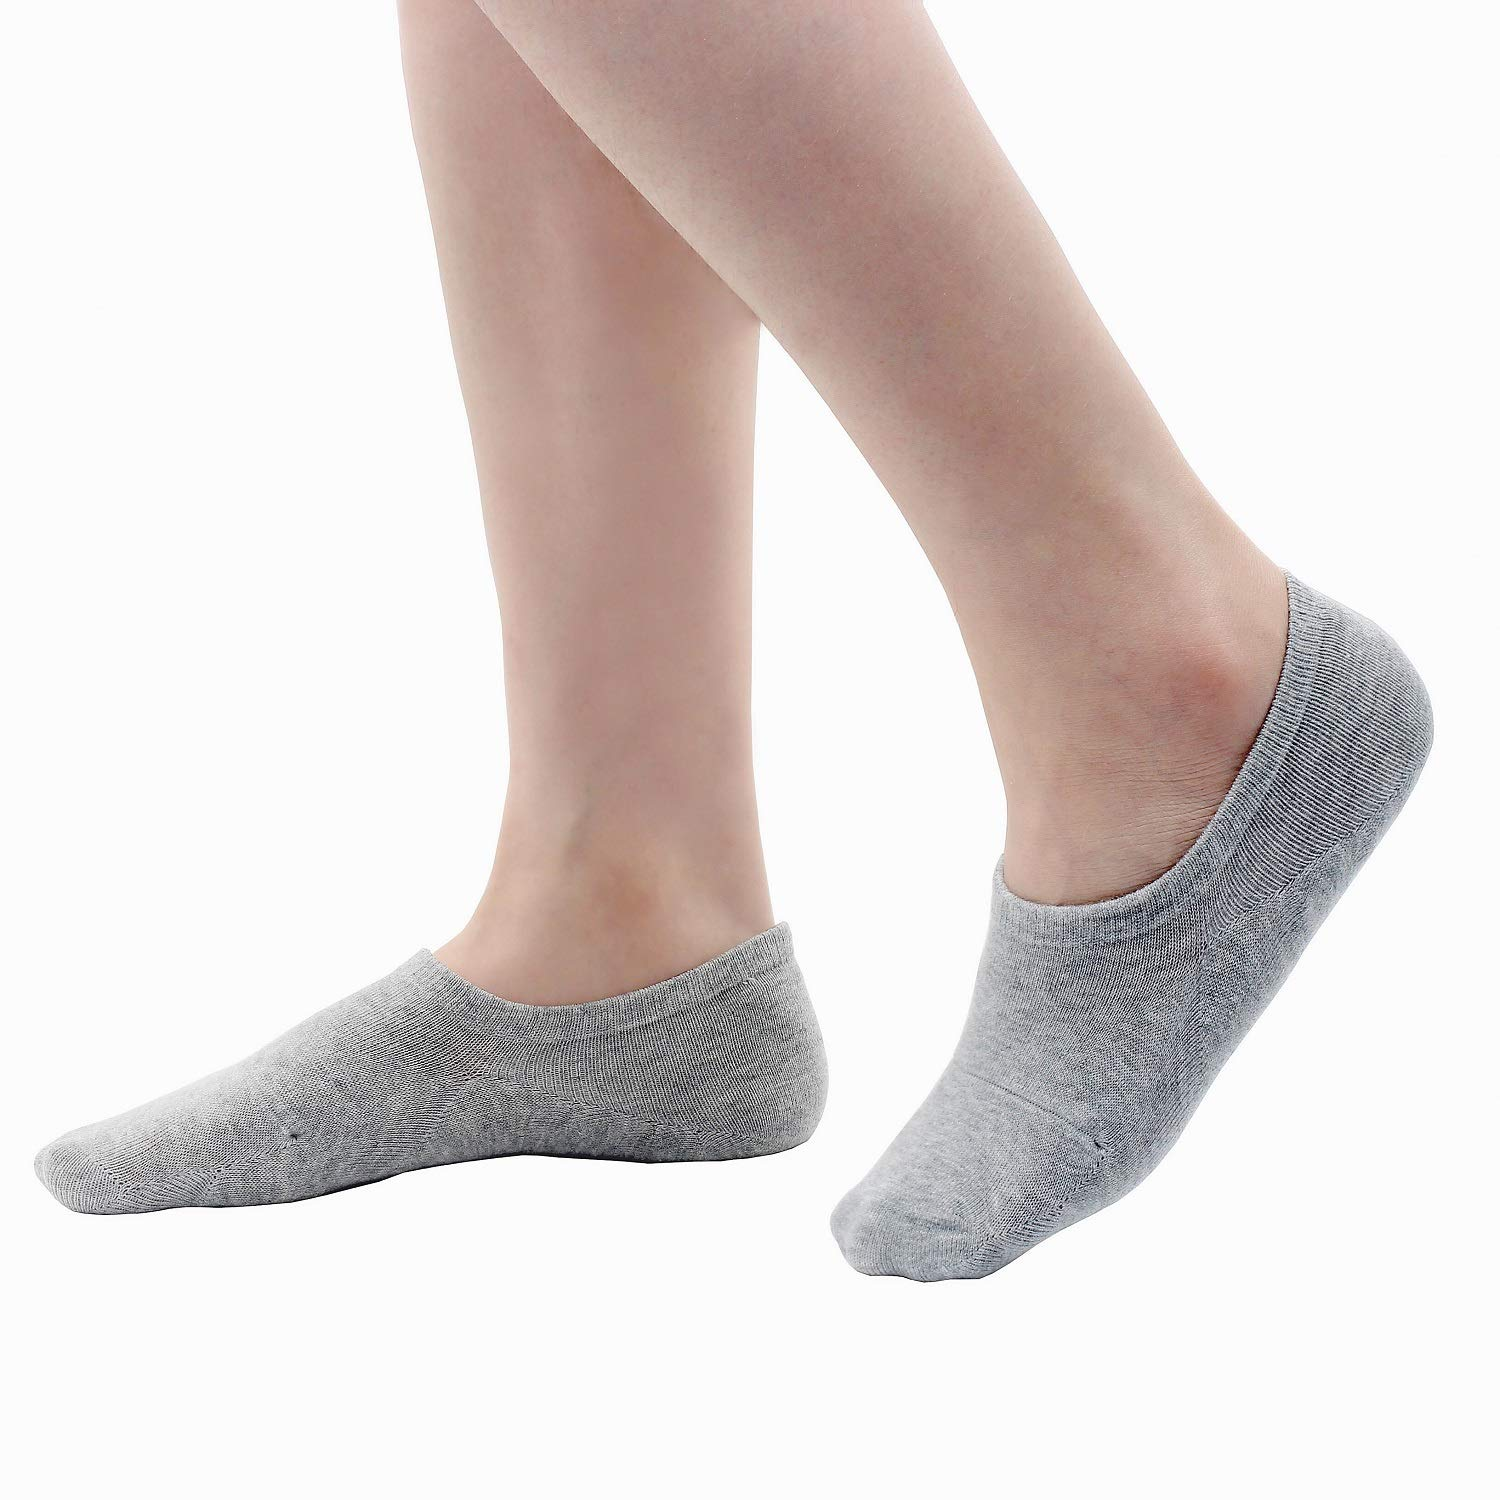 Non-Slip Invisible Short Sock Footwit No Show Liner Socks 3//6 Pairs Women Ultra Low Cut Socks Size 5-11